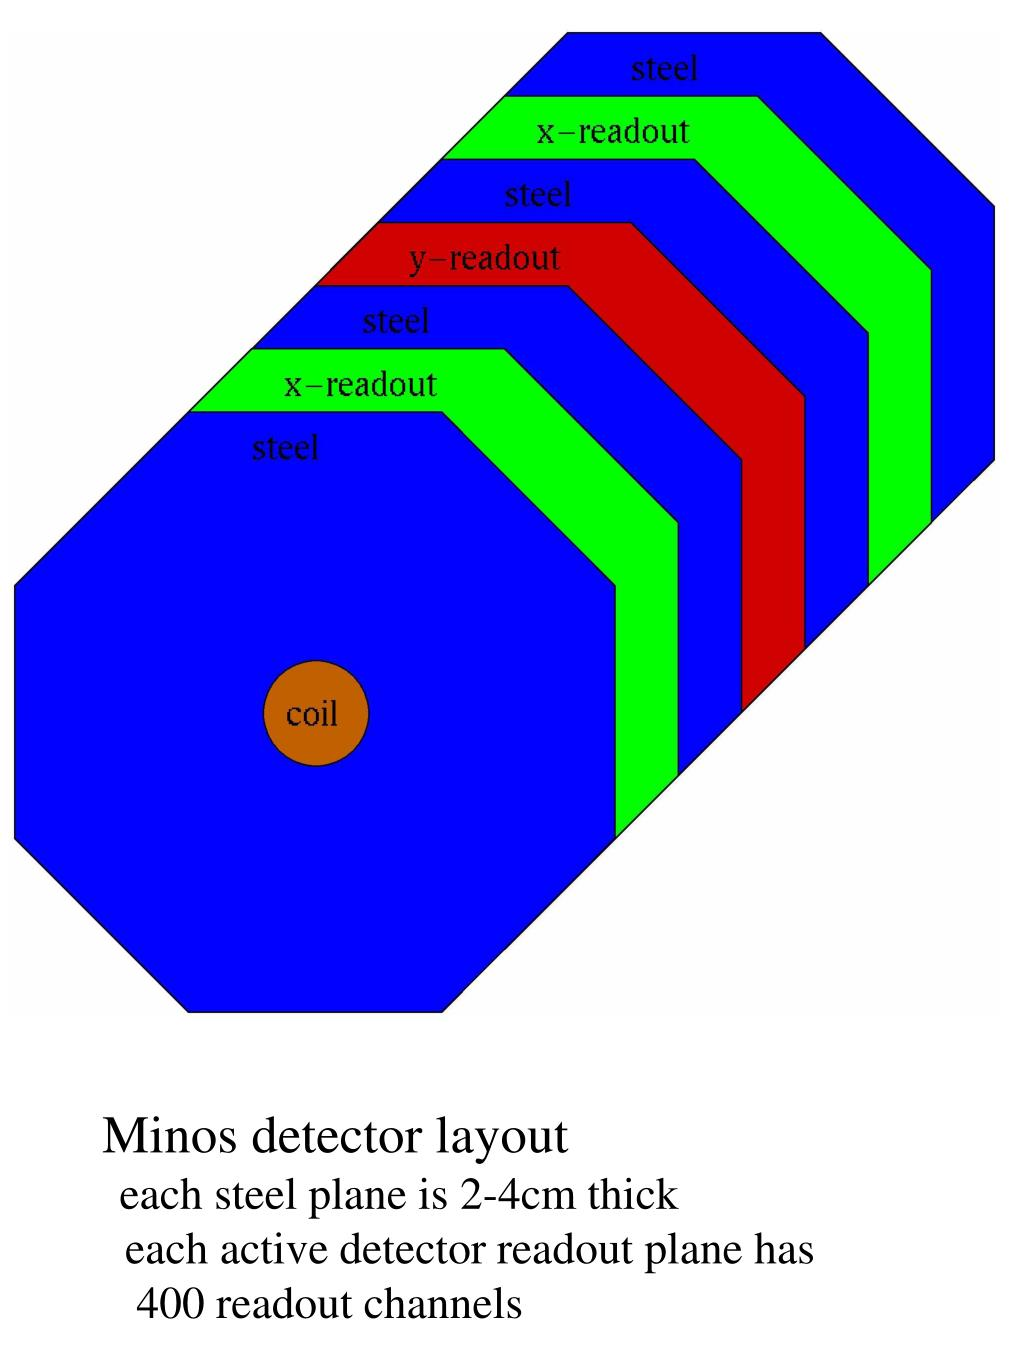 Minos detector layout